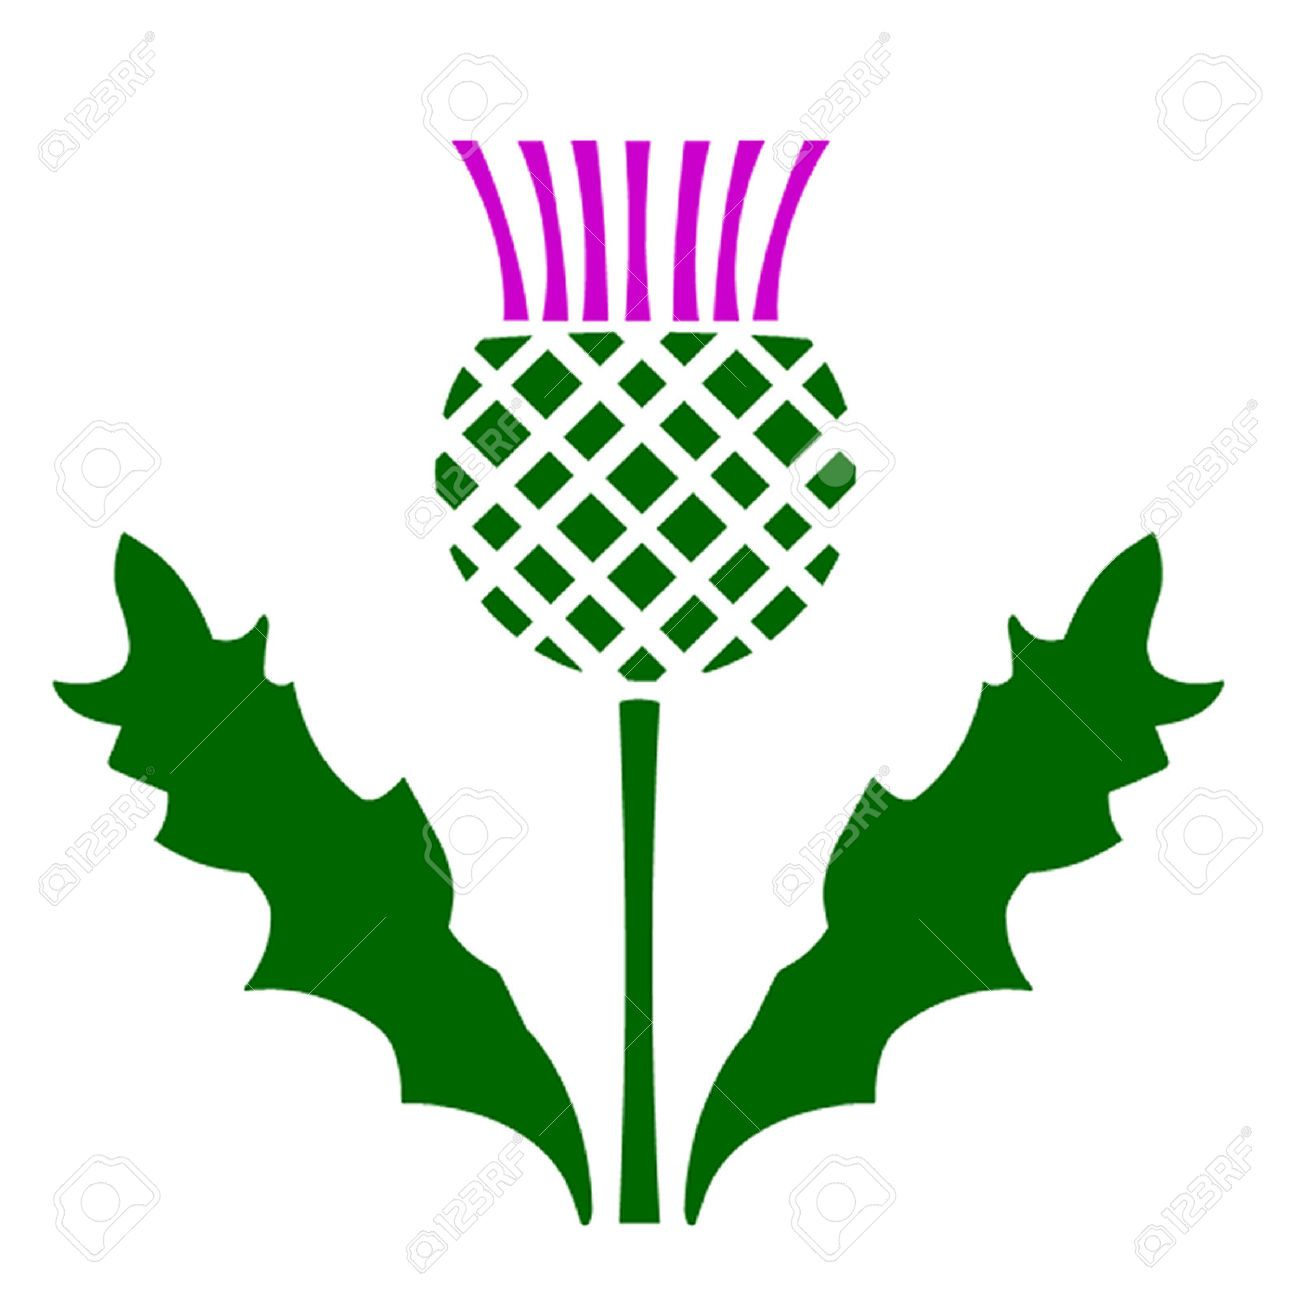 Thistle Stock Vector Illustration And Royalty Free Thistle Clipart.